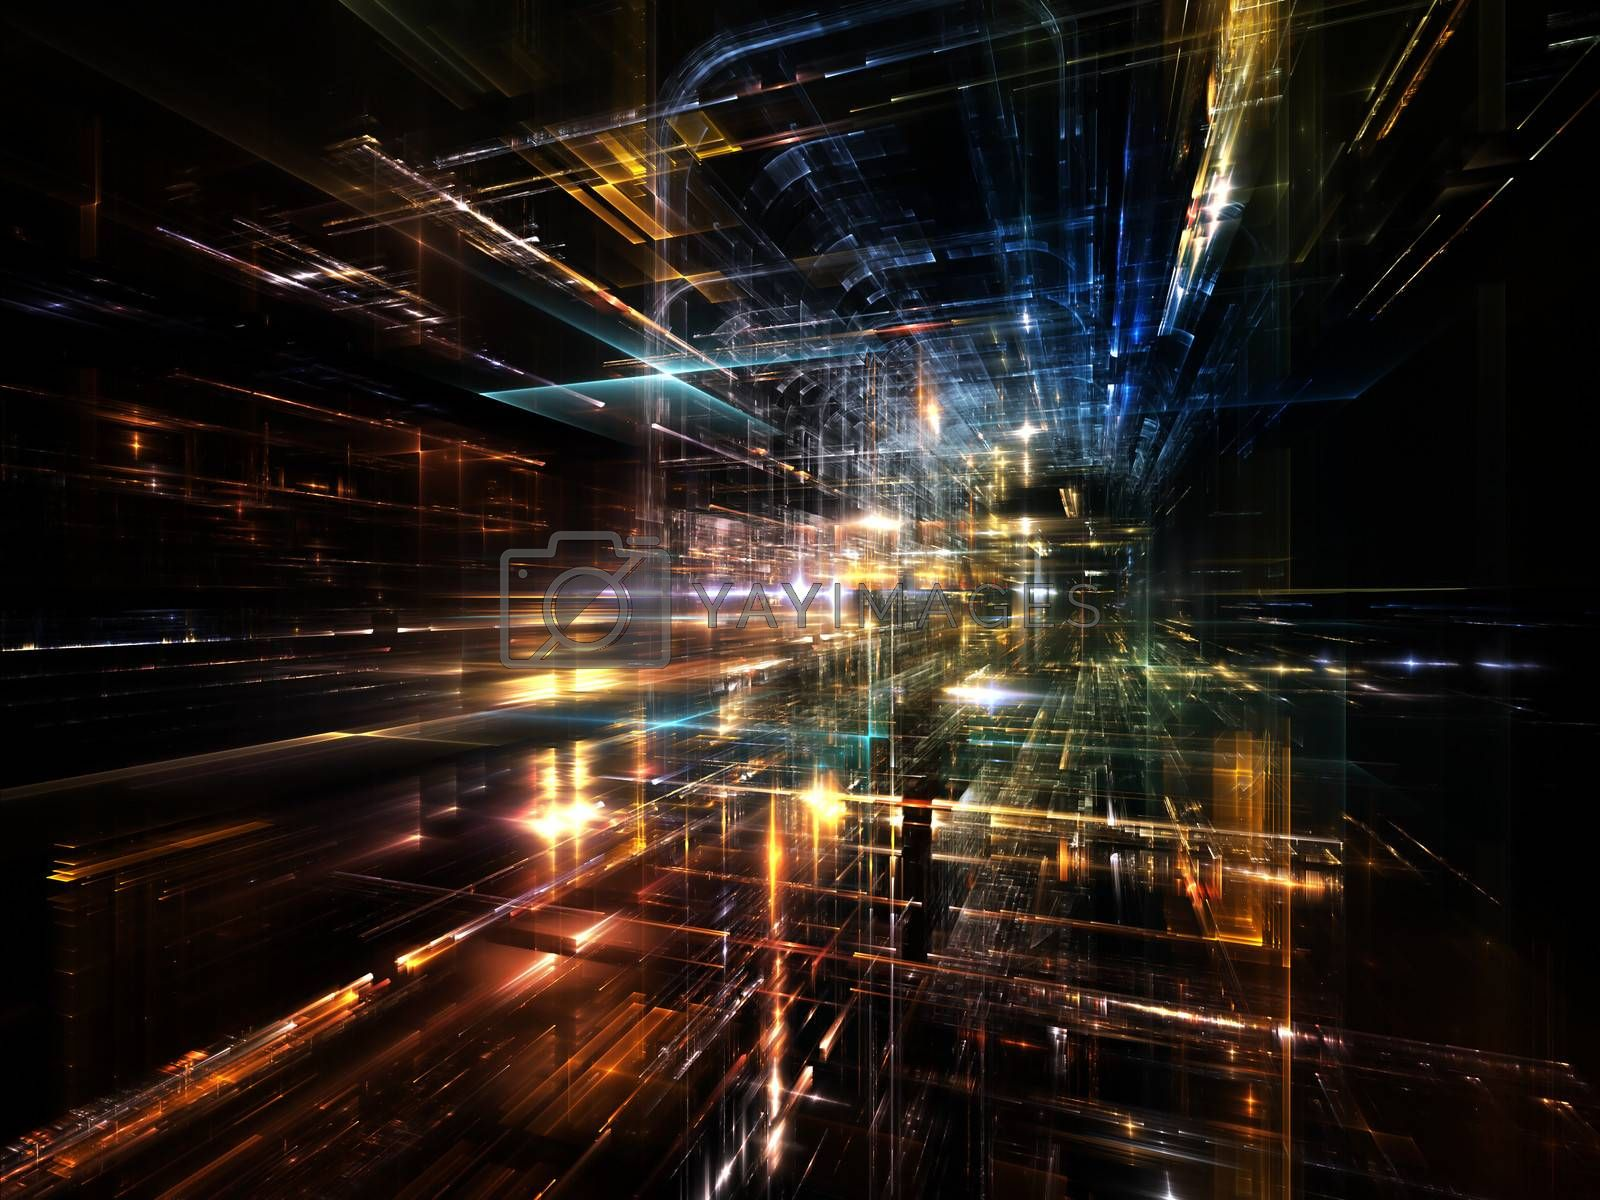 City Lights series. Composition of  technological fractal textures to serve as a supporting backdrop for projects on science, technology, design and imagination